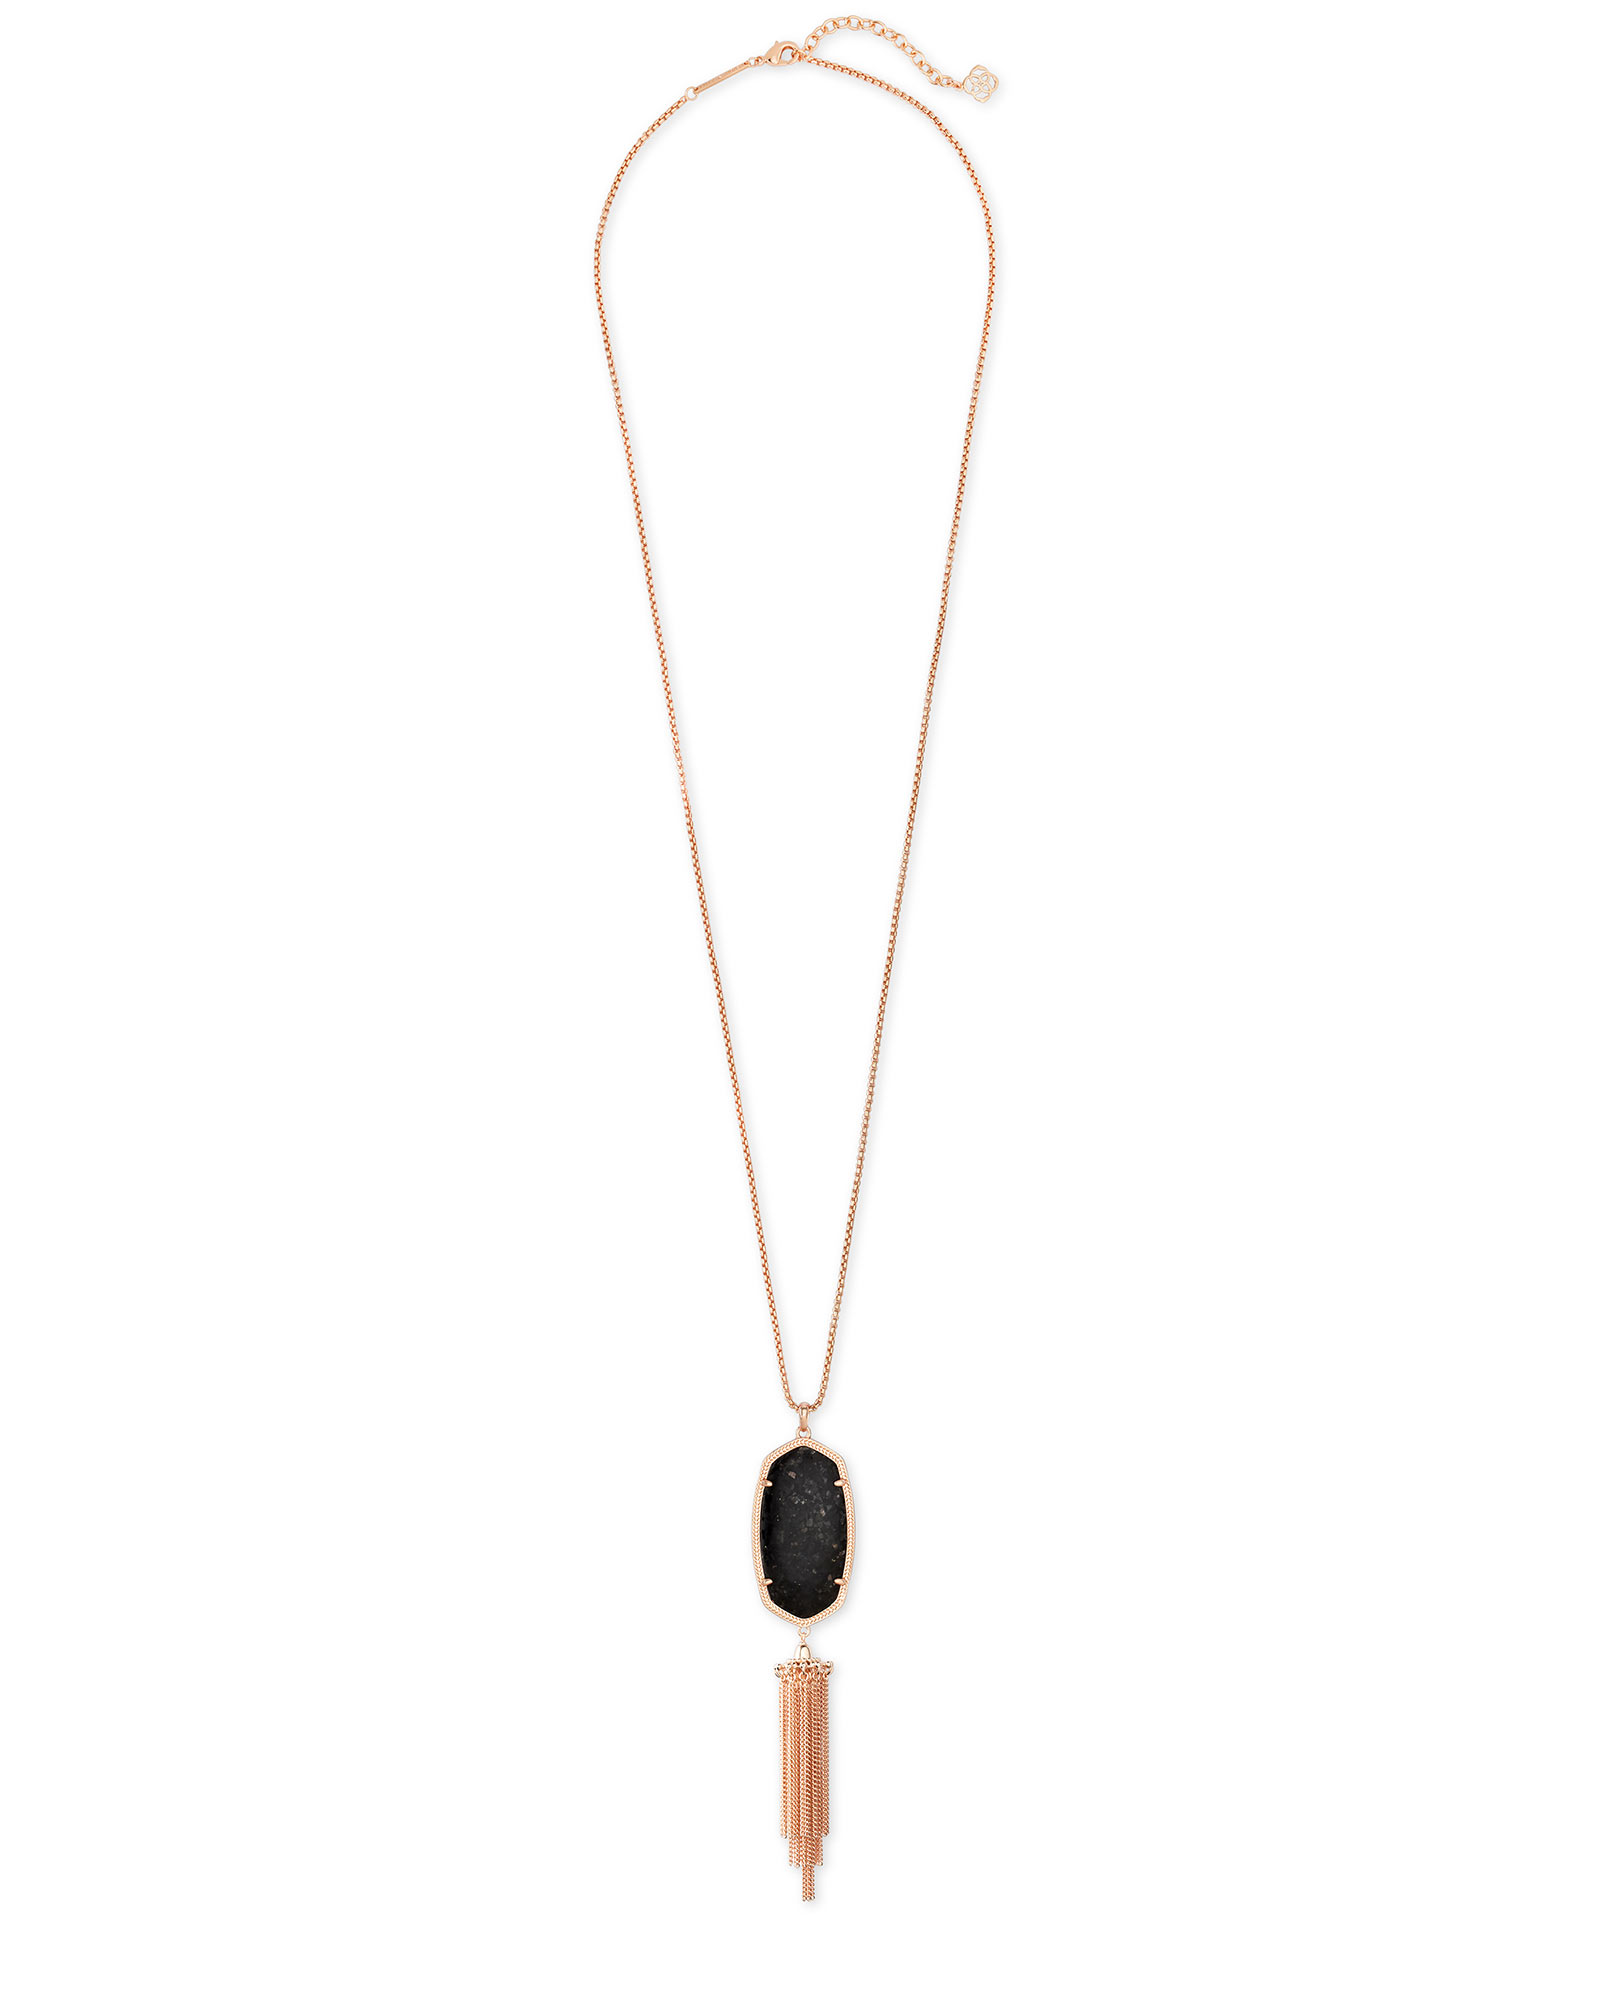 Rayne Rose Gold Long Pendant Necklace in Black Granite